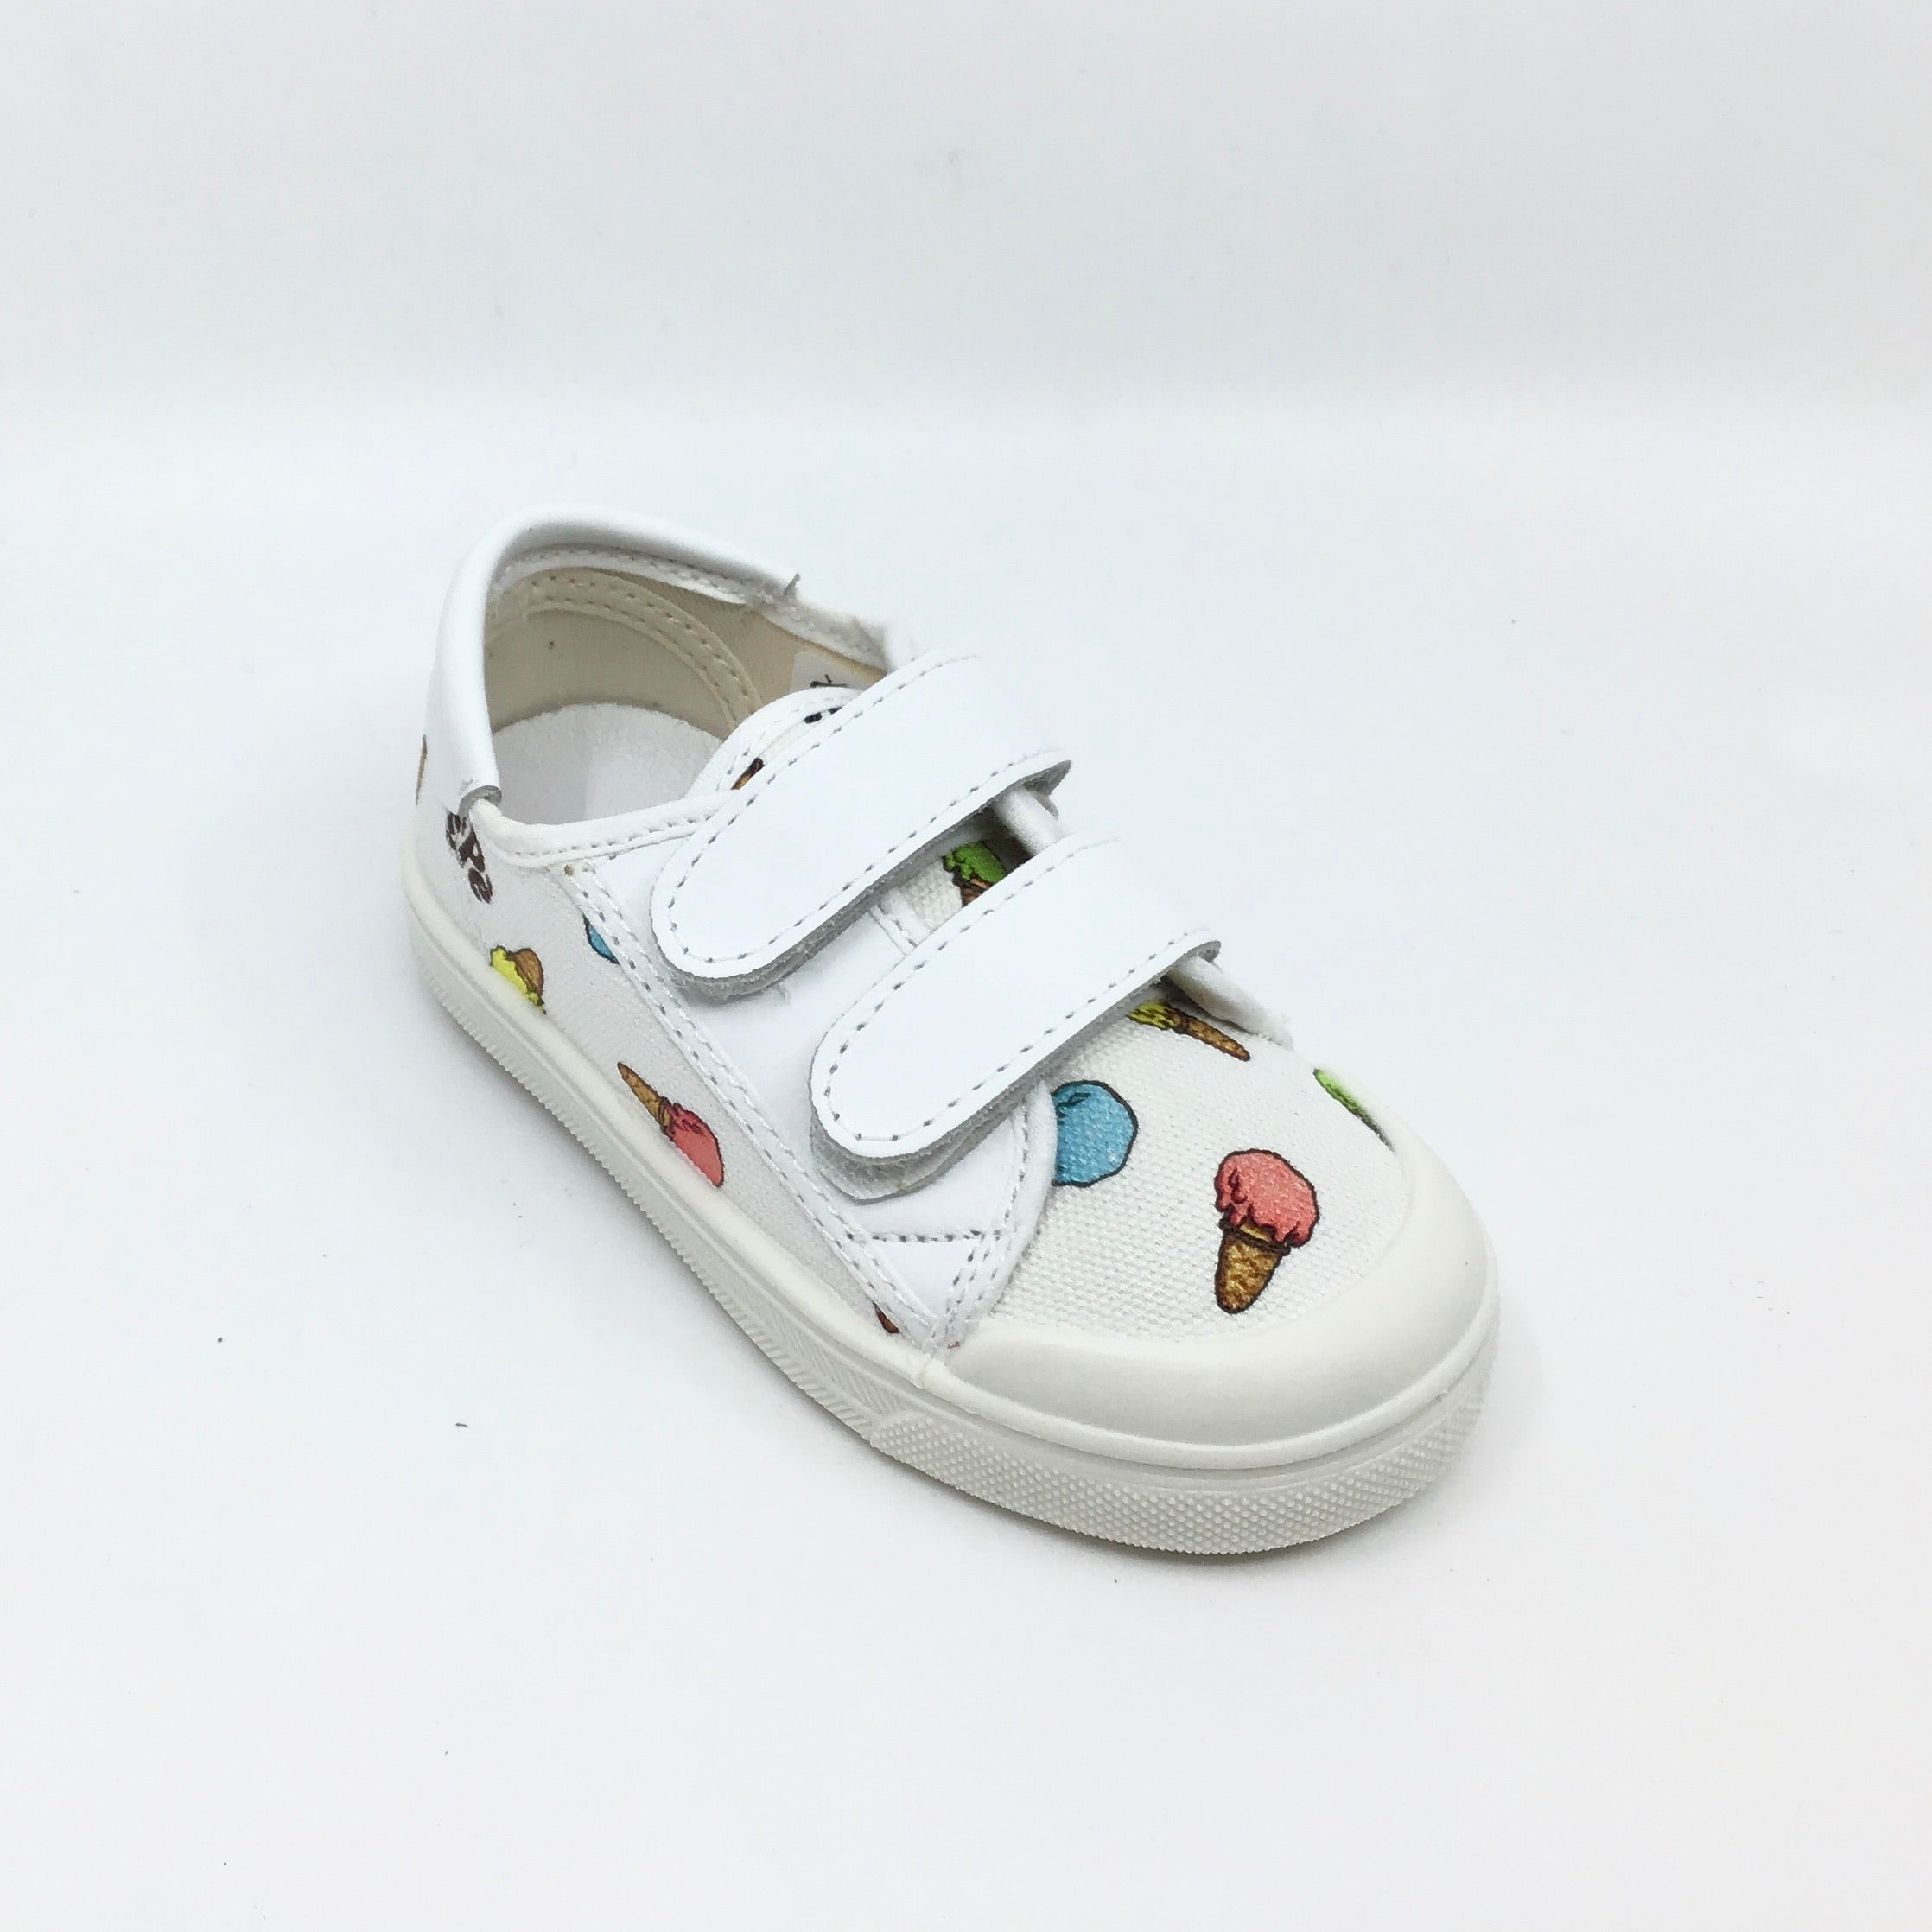 Pepe White Sneaker with Ice Cream Cone Design